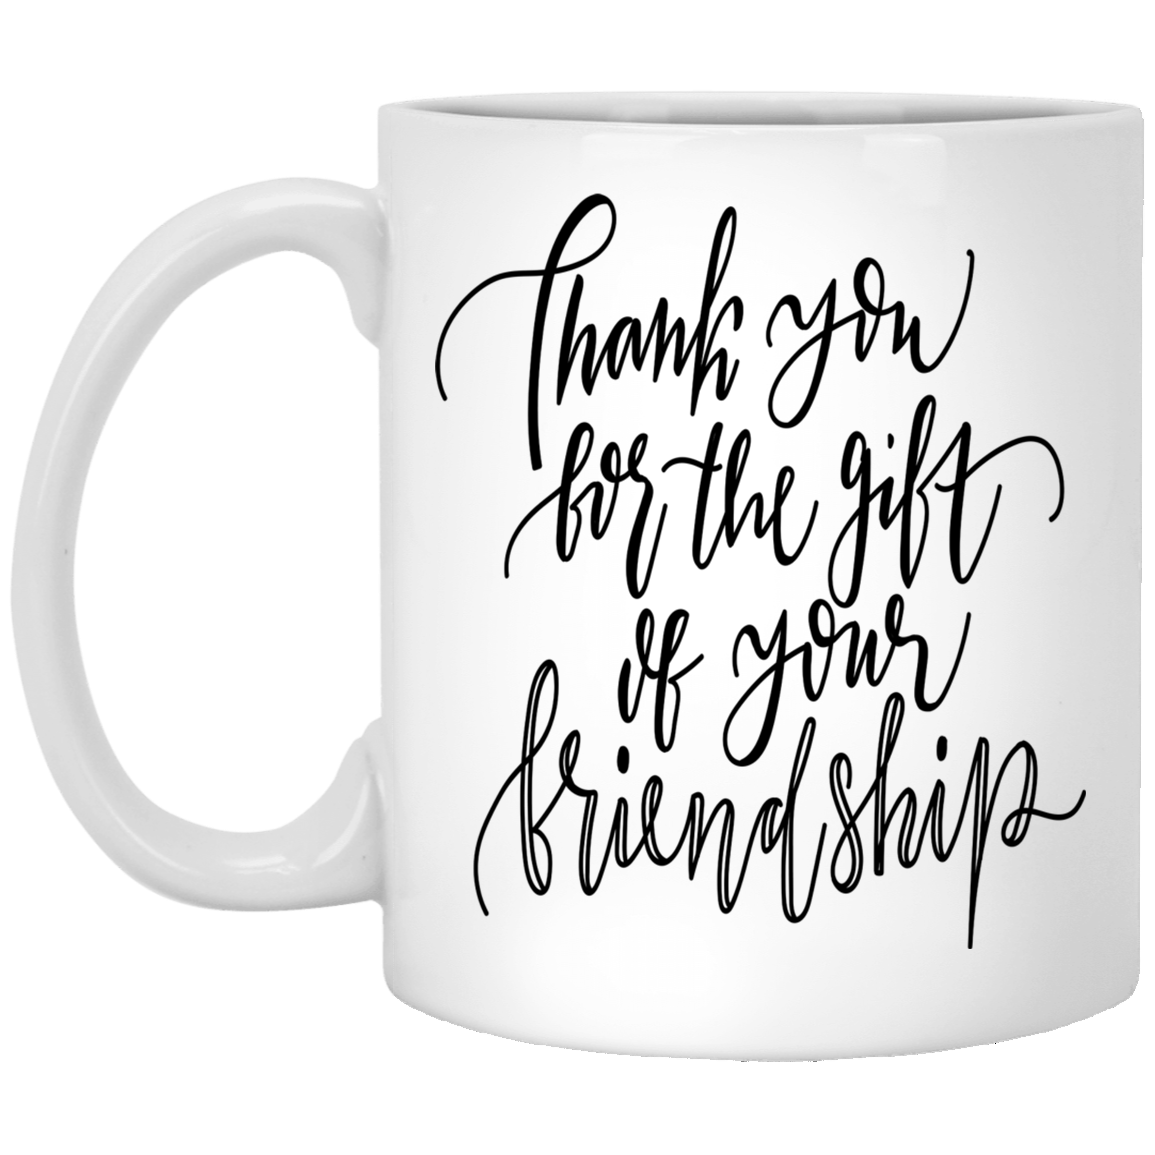 Christmas Mug Friendship Gift  Best Friends Gift 11 oz Ceramic Cup Thank You For The Gift Of Your Friendship